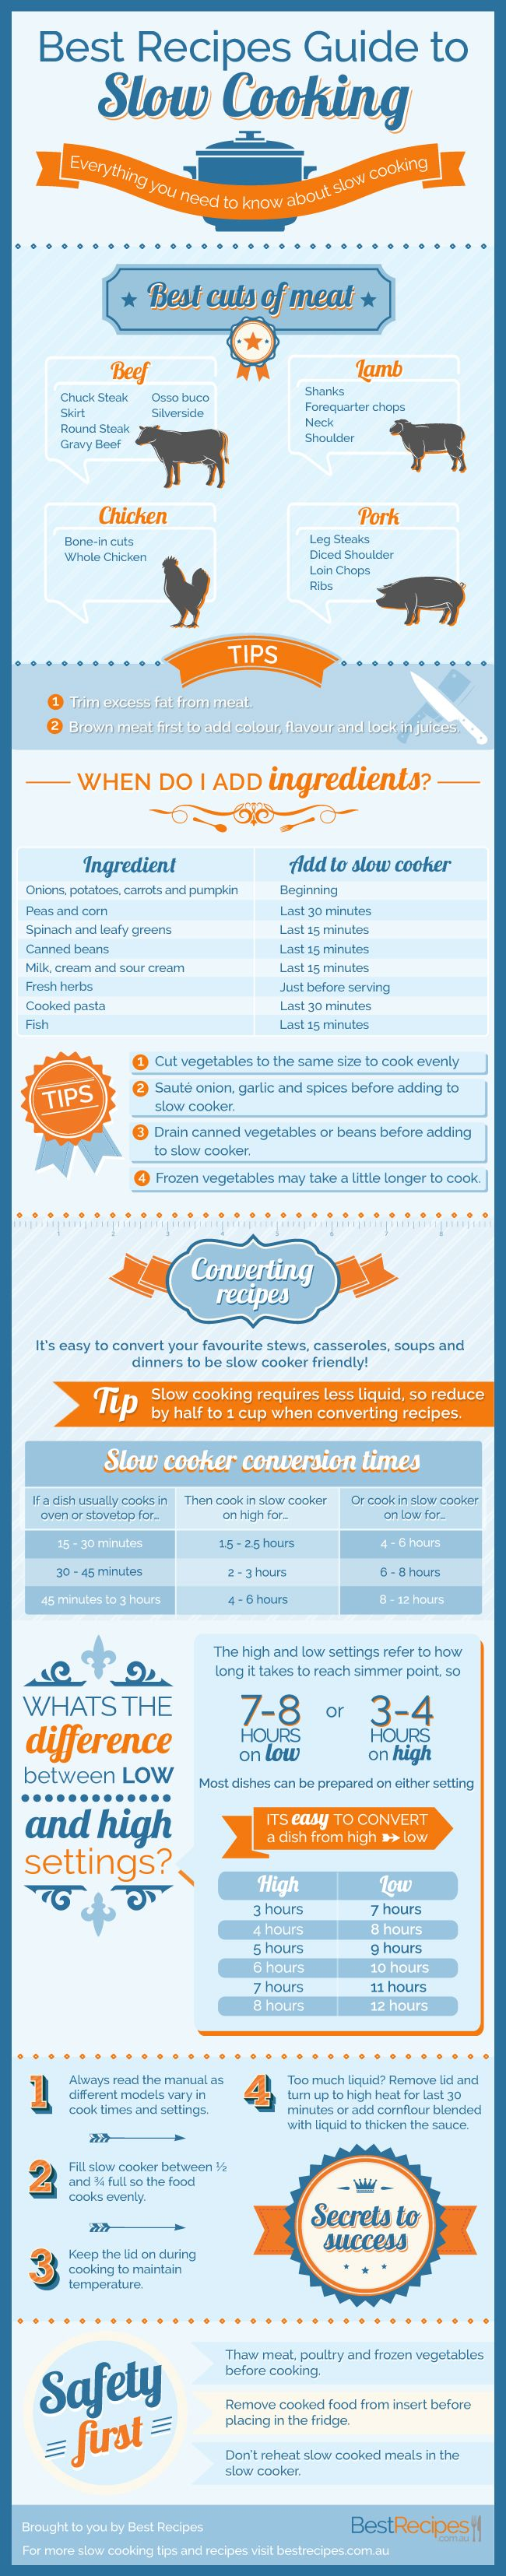 crockpot info graphic